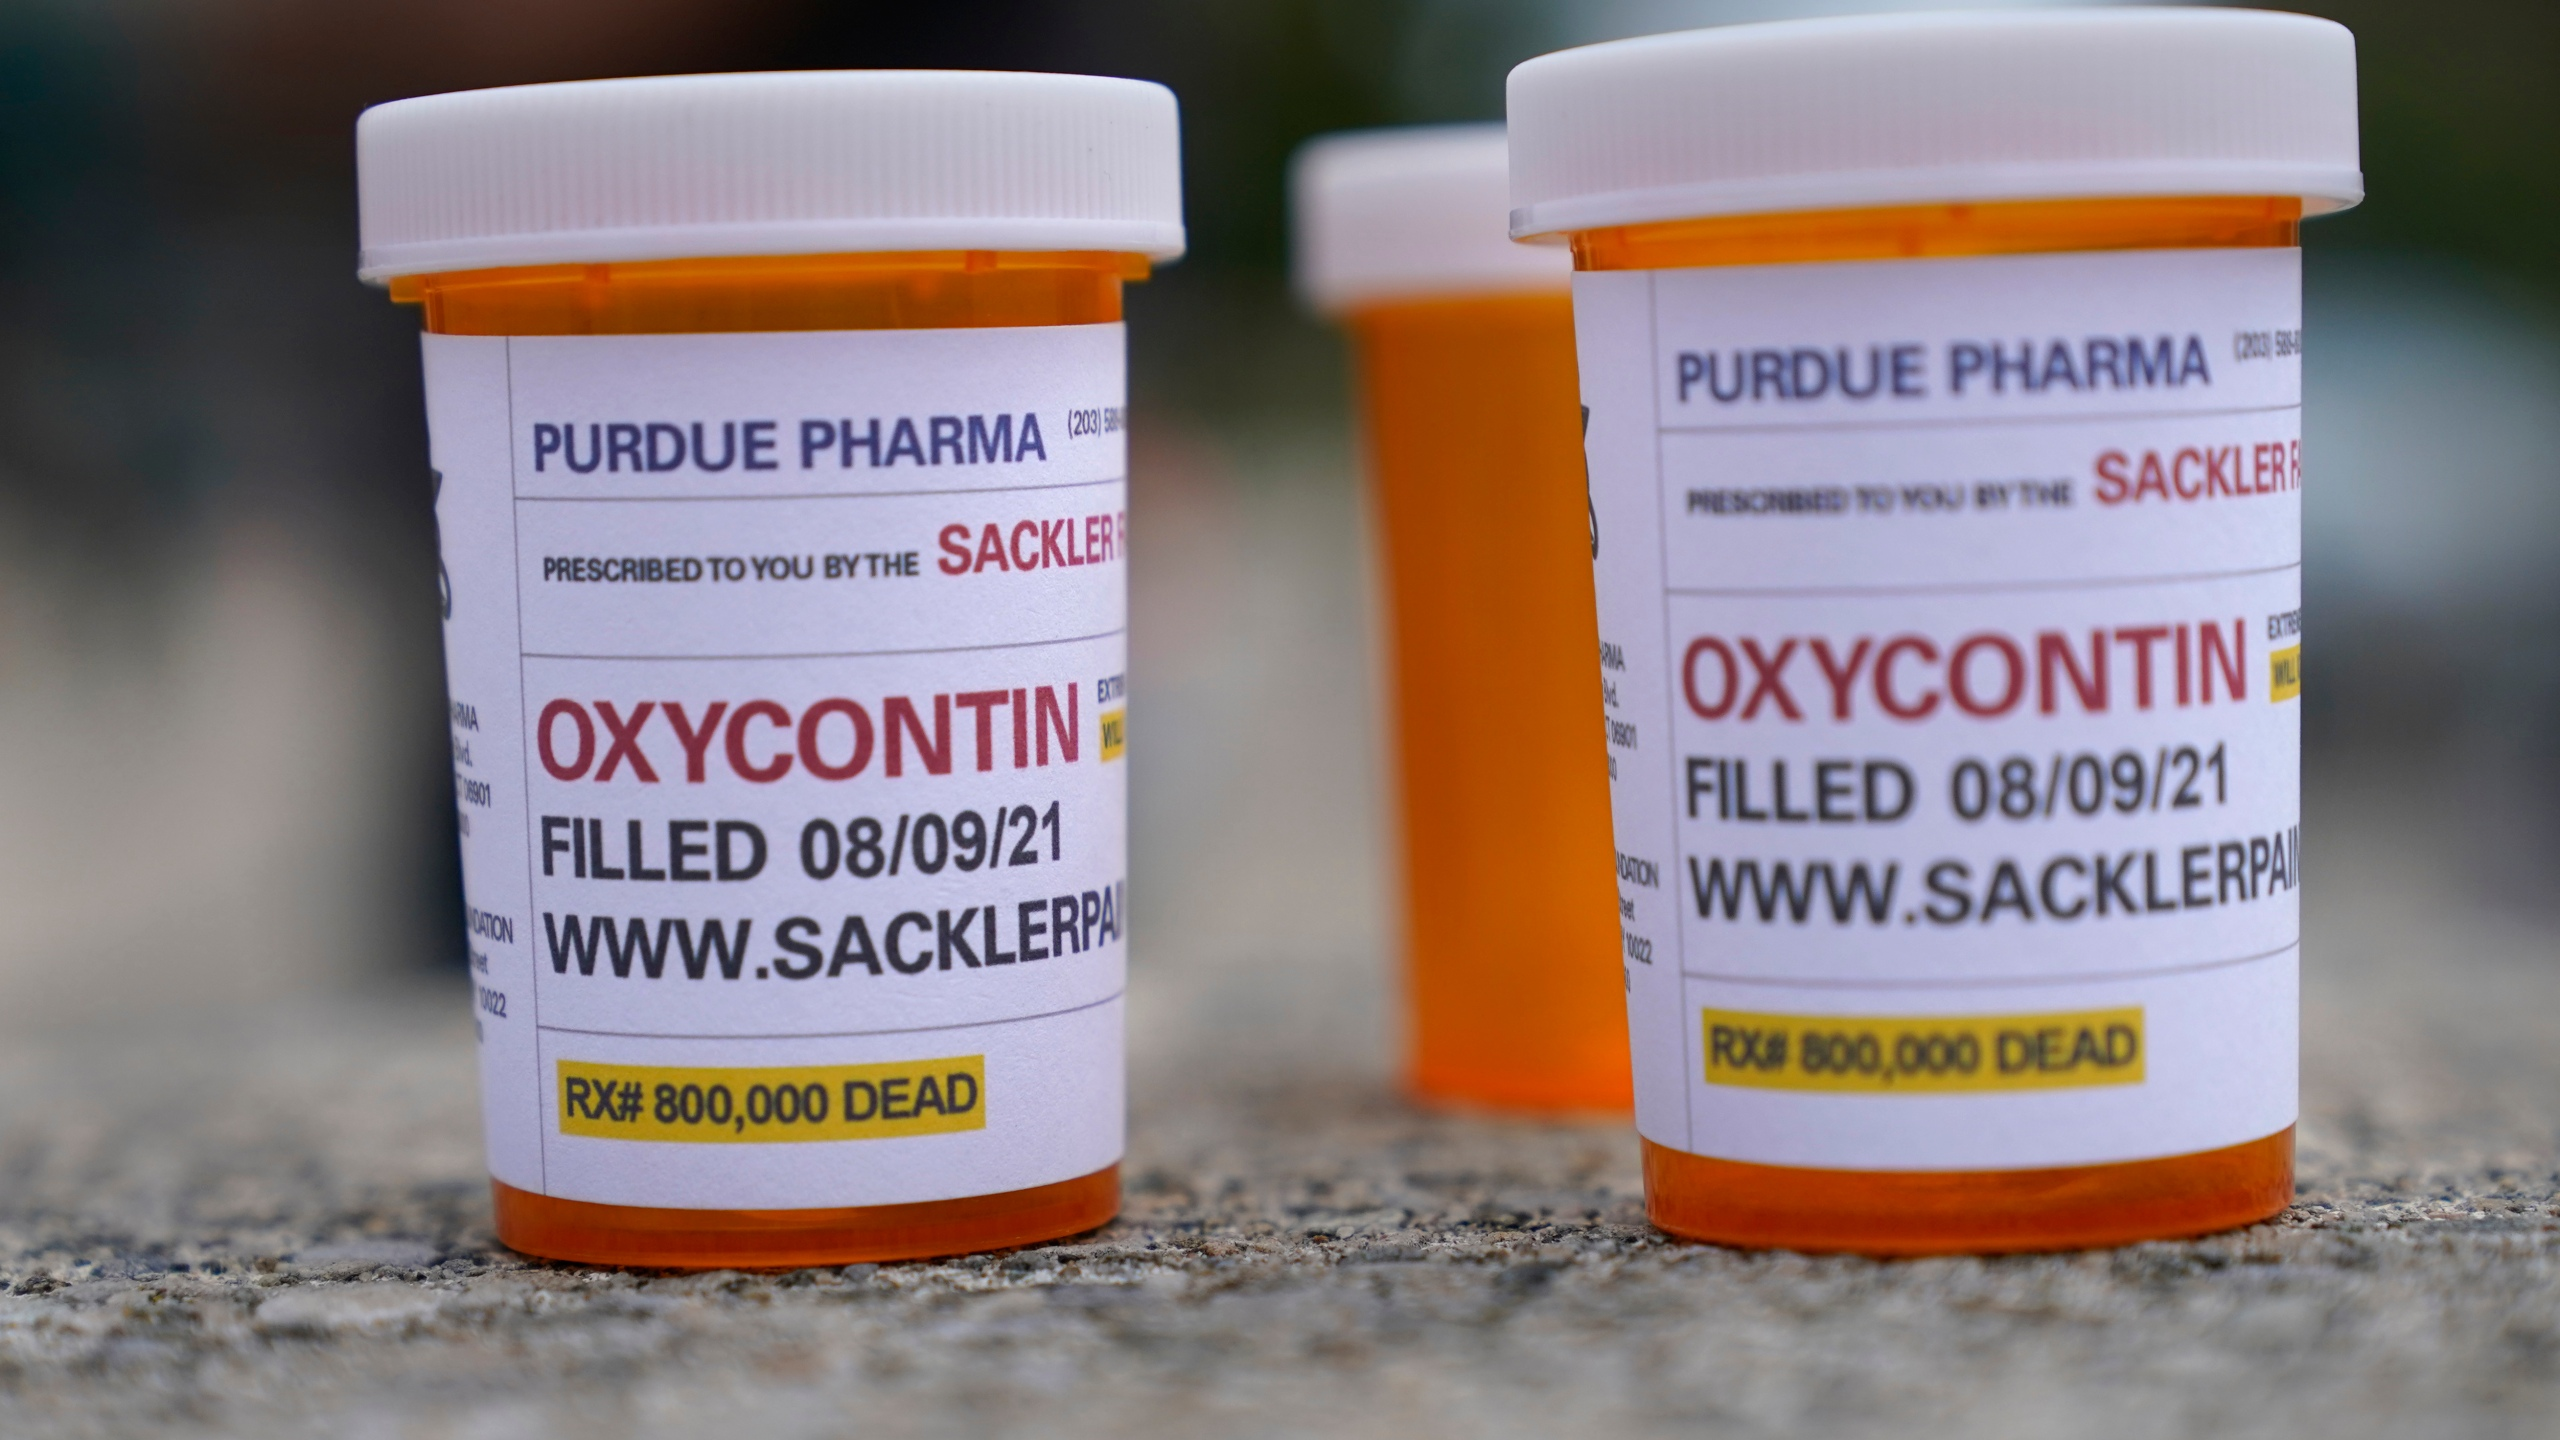 Fake pill bottles with messages about Purdue Pharma are displayed during a protest outside the courthouse where the bankruptcy of the company is taking place in White Plains, N.Y.